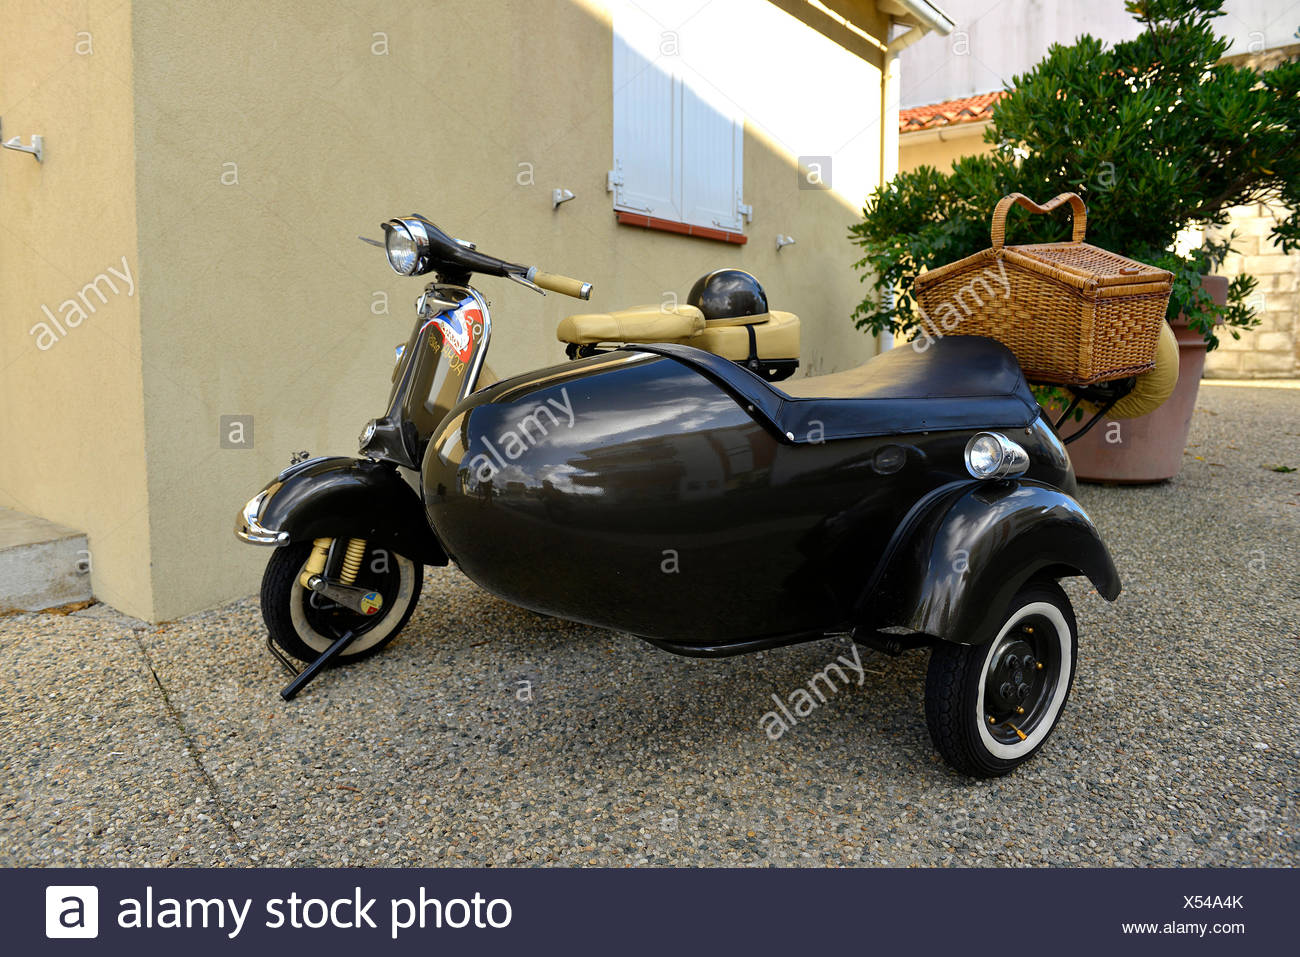 Europe, France, two-wheeled Vespa sidecar in the streets of Saint-Gilles-Croix-de-Vie - Stock Image